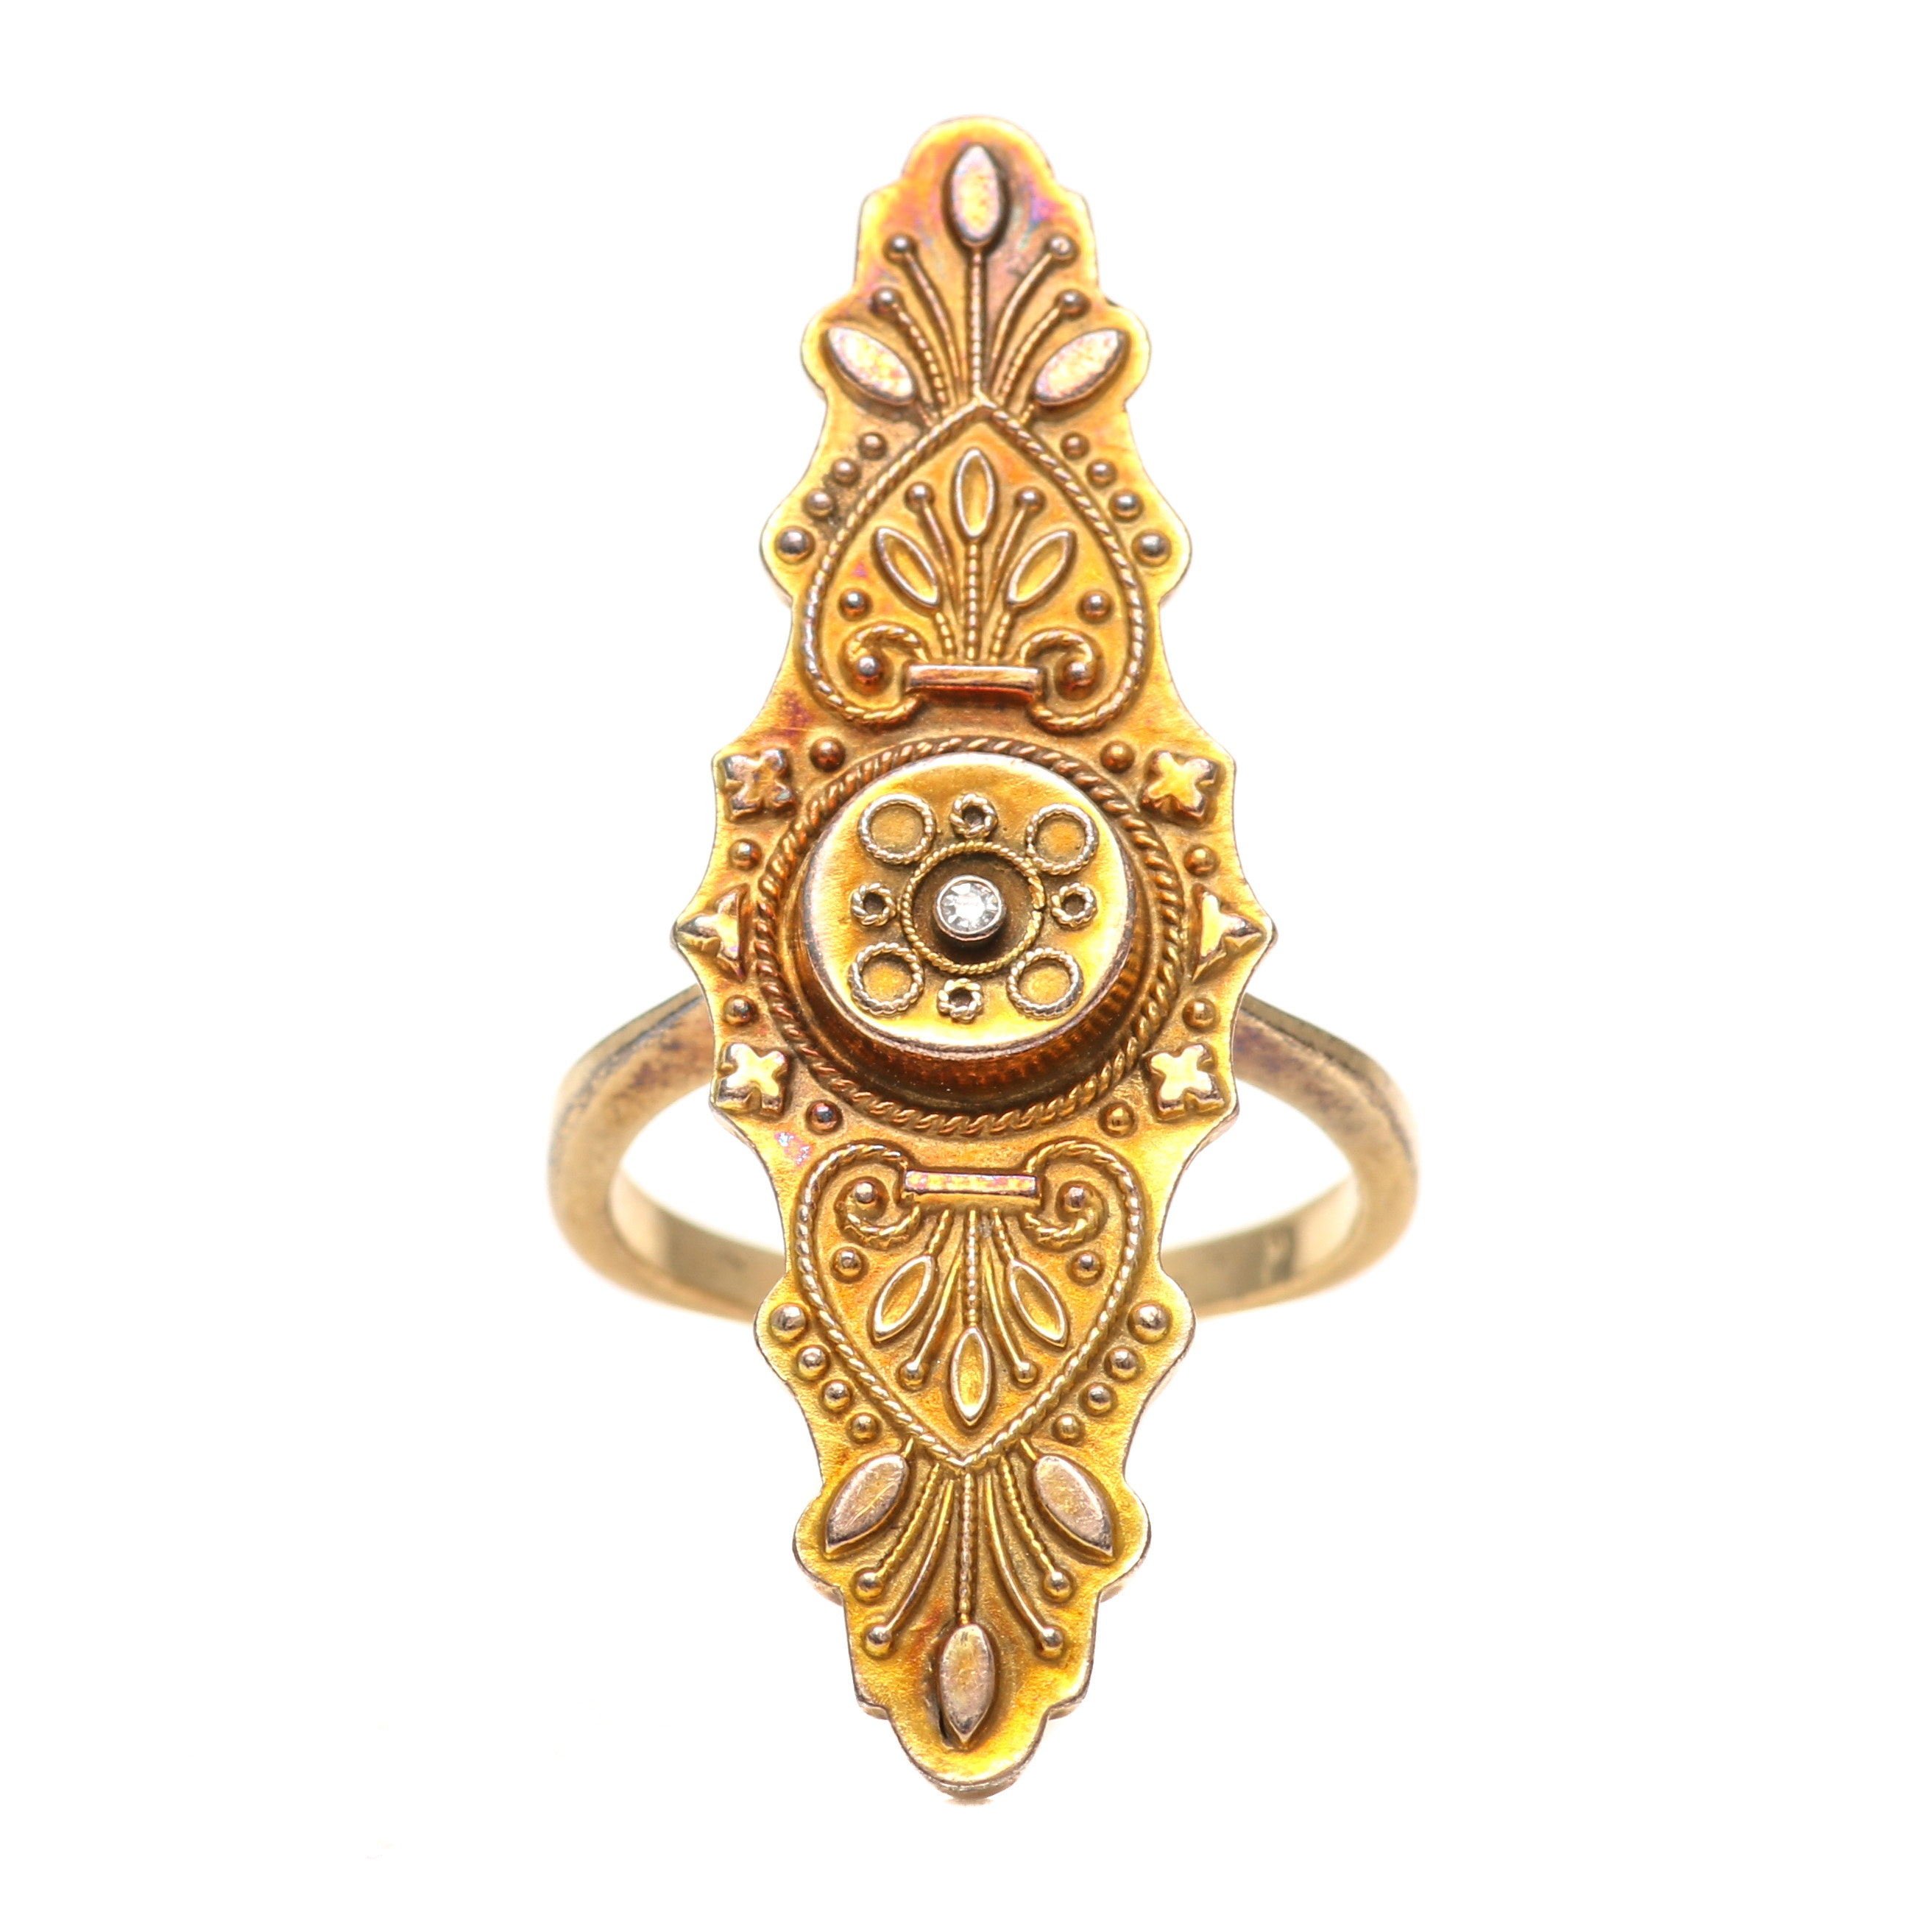 9K and 14K Yellow Gold Diamond Ring With Victorian Accents